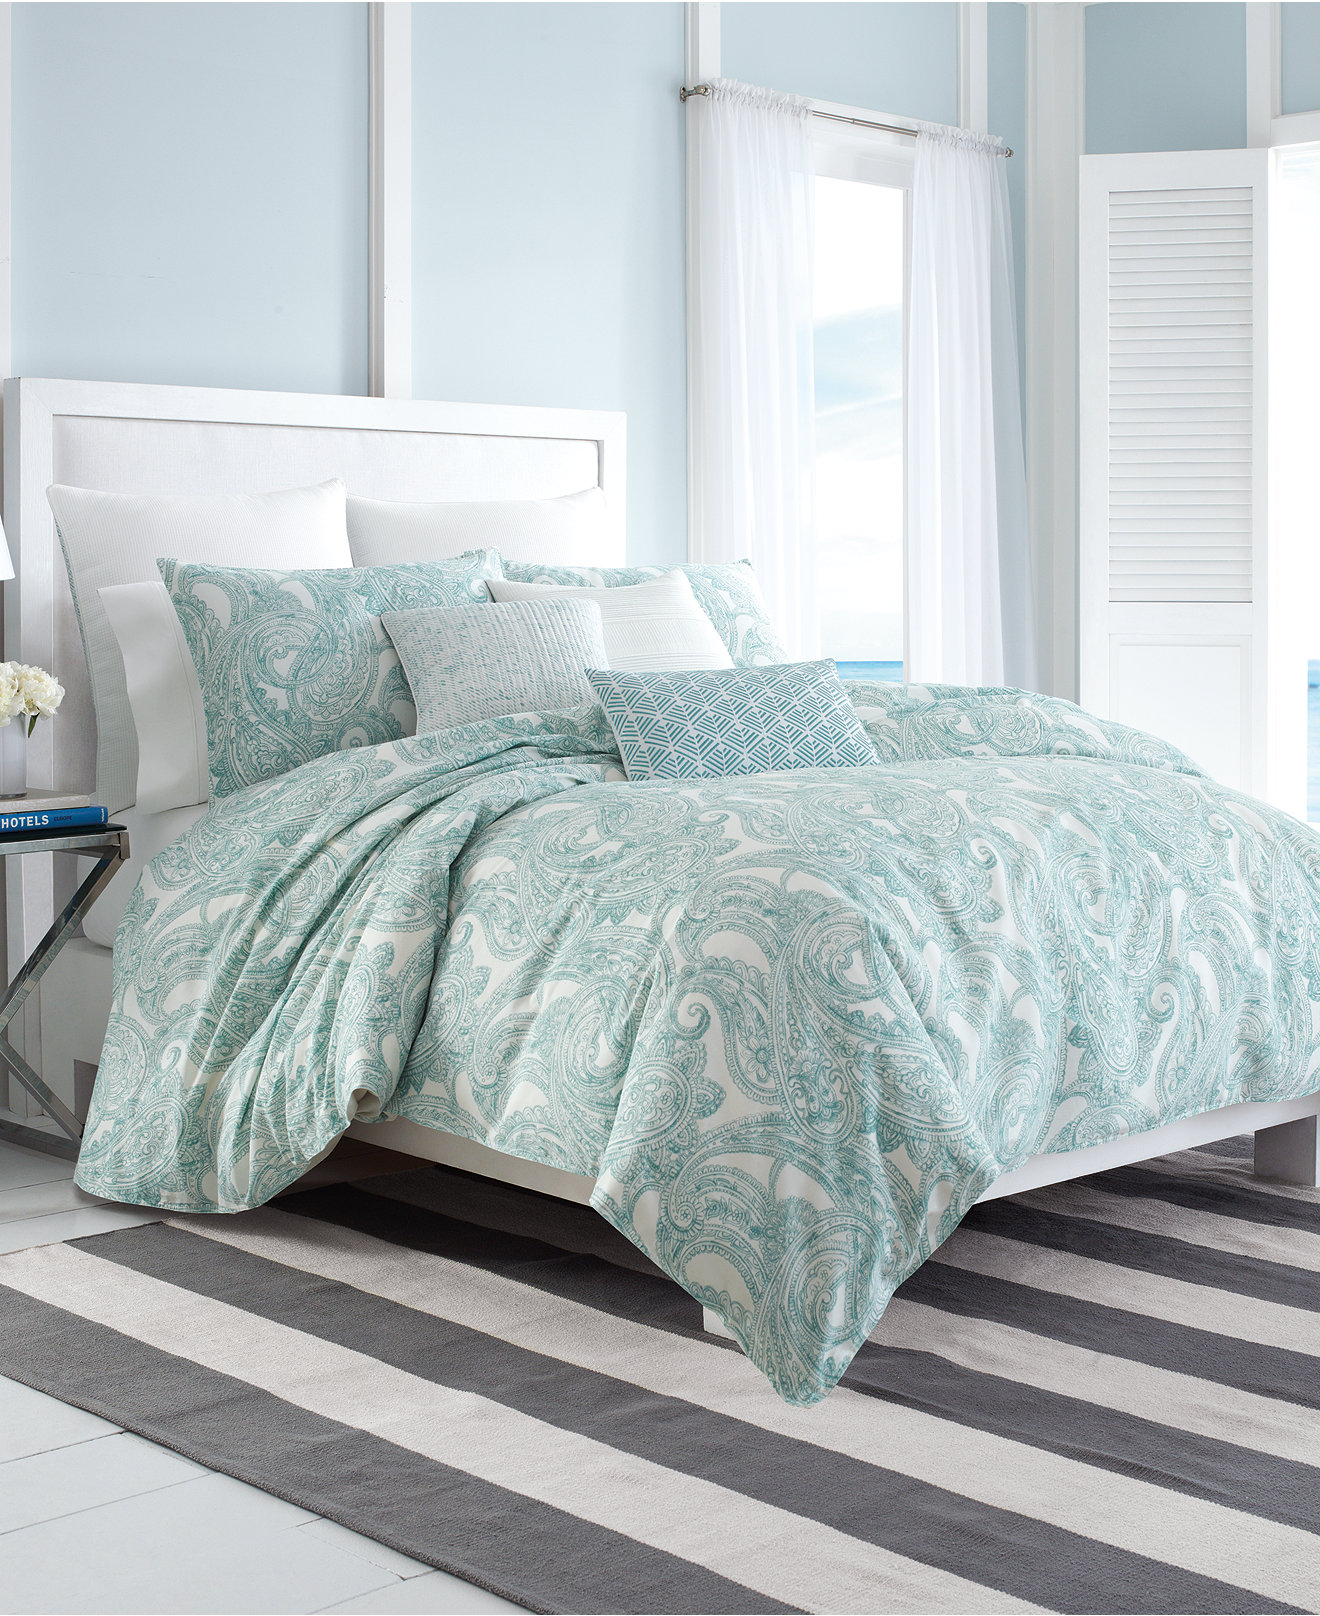 Nautica Long Bay King Duvet Cover - Bedding Collections - Bed & Bath - Macy's Bridal and Wedding Registry